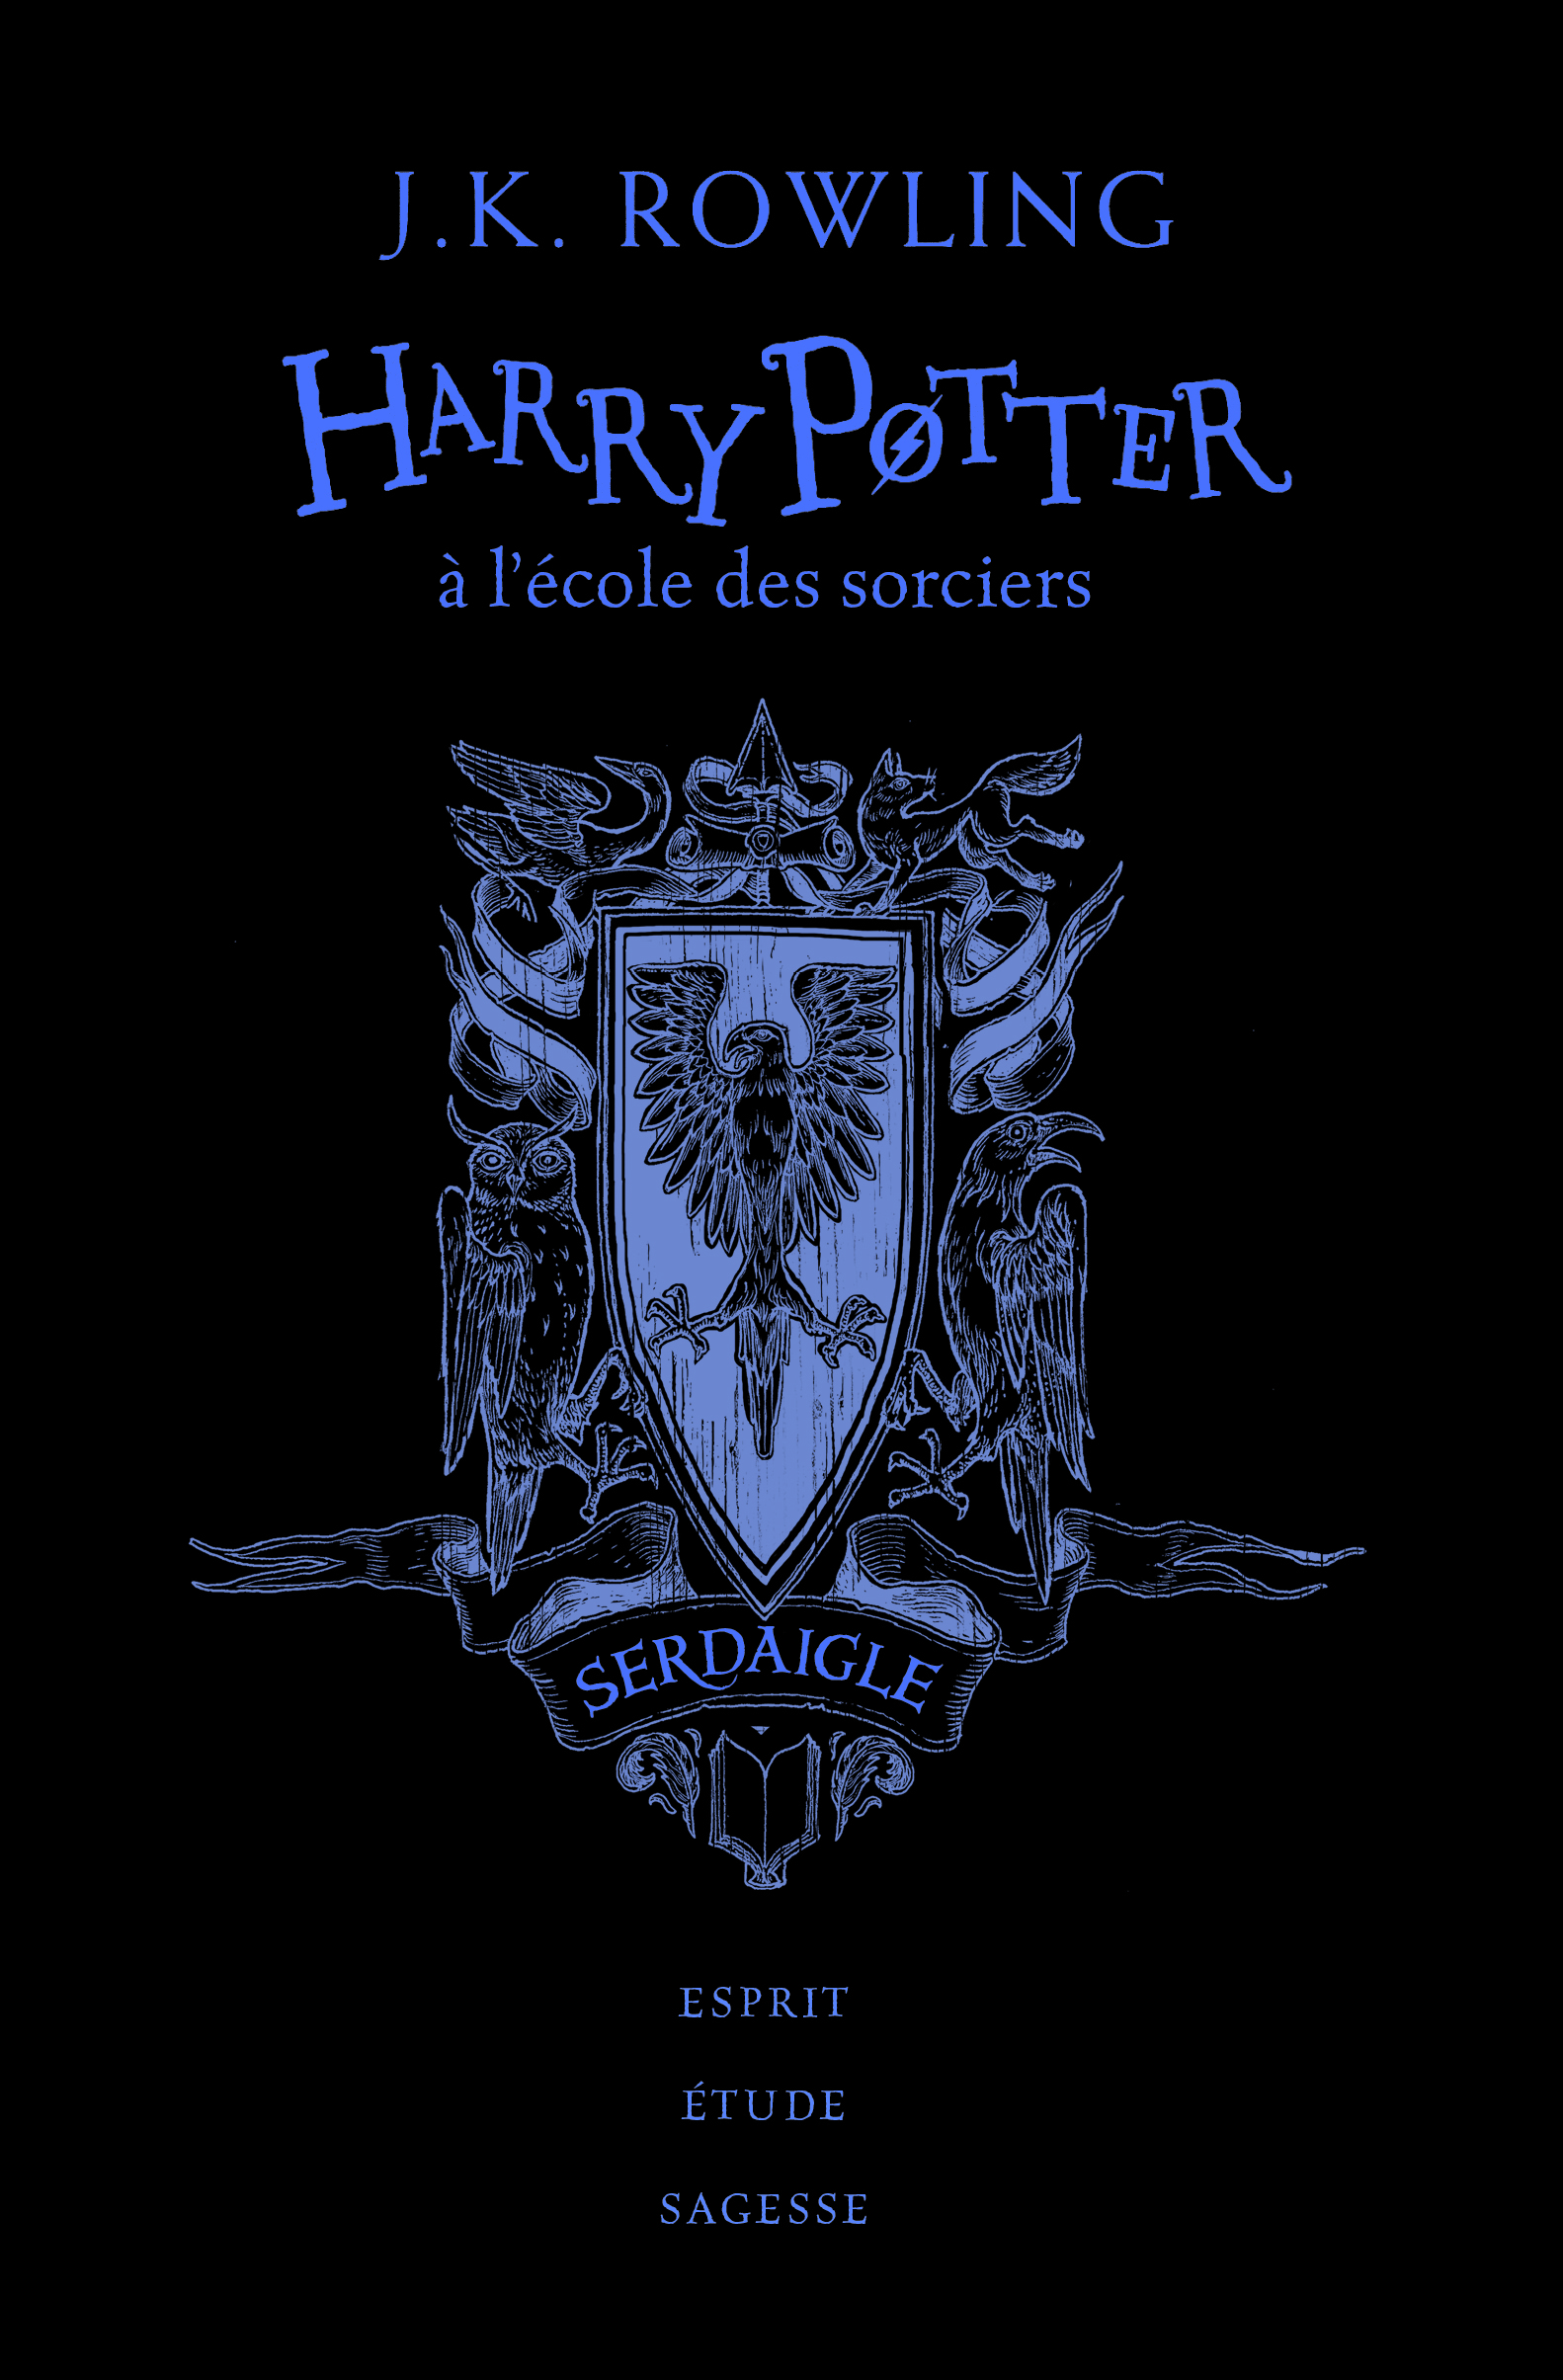 HARRY POTTER, I : HARRY POTTER A L'ECOLE DES SORCIERS - SERDAIGLE